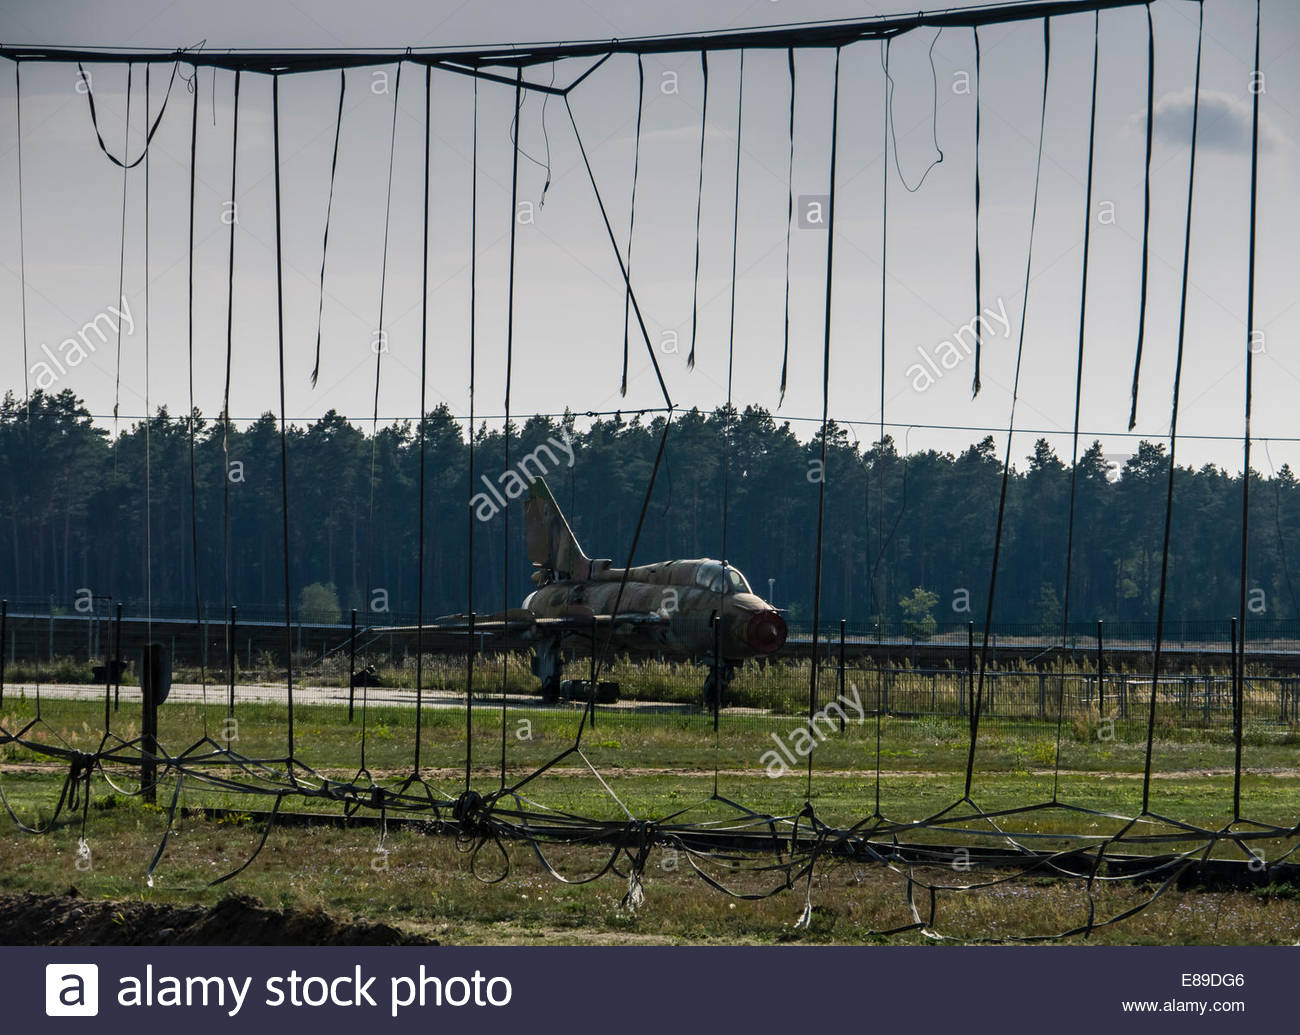 Germany East DDR, Finow, Museum Russian Cold War Base Mig 21 Aircraft Arrester Barrier remains - Stock Image